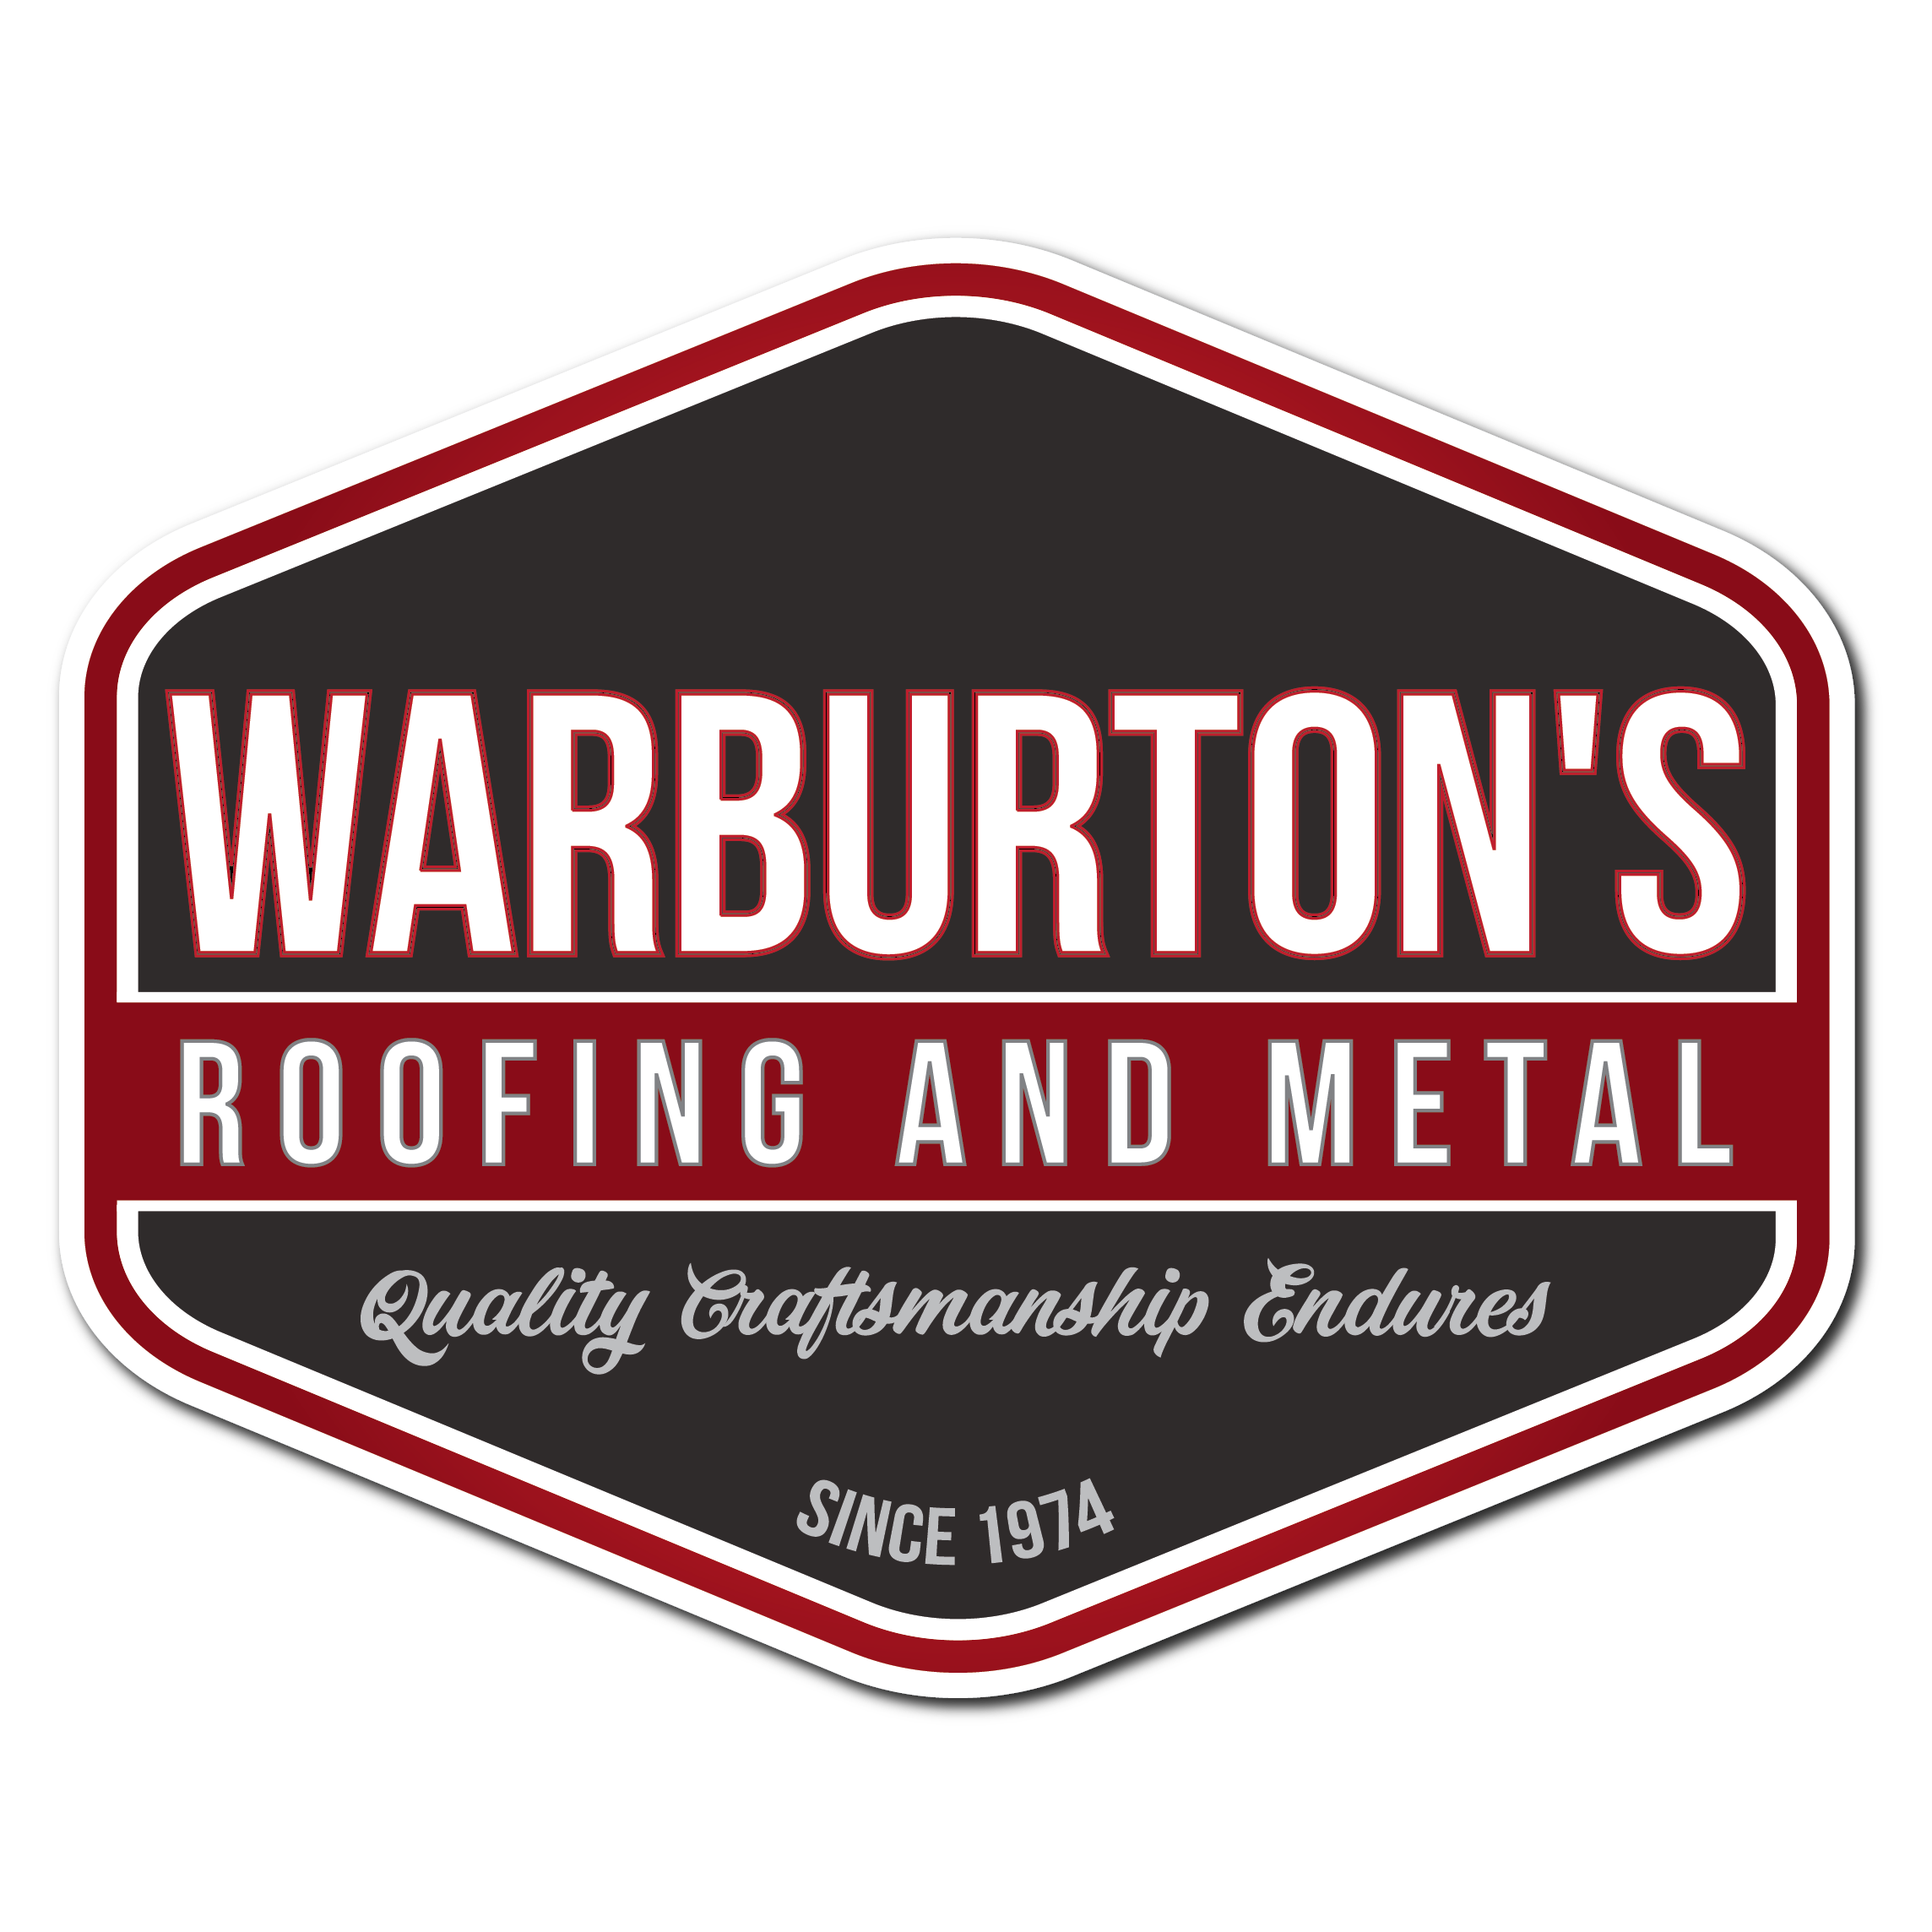 Warburton's Roofing and Metal